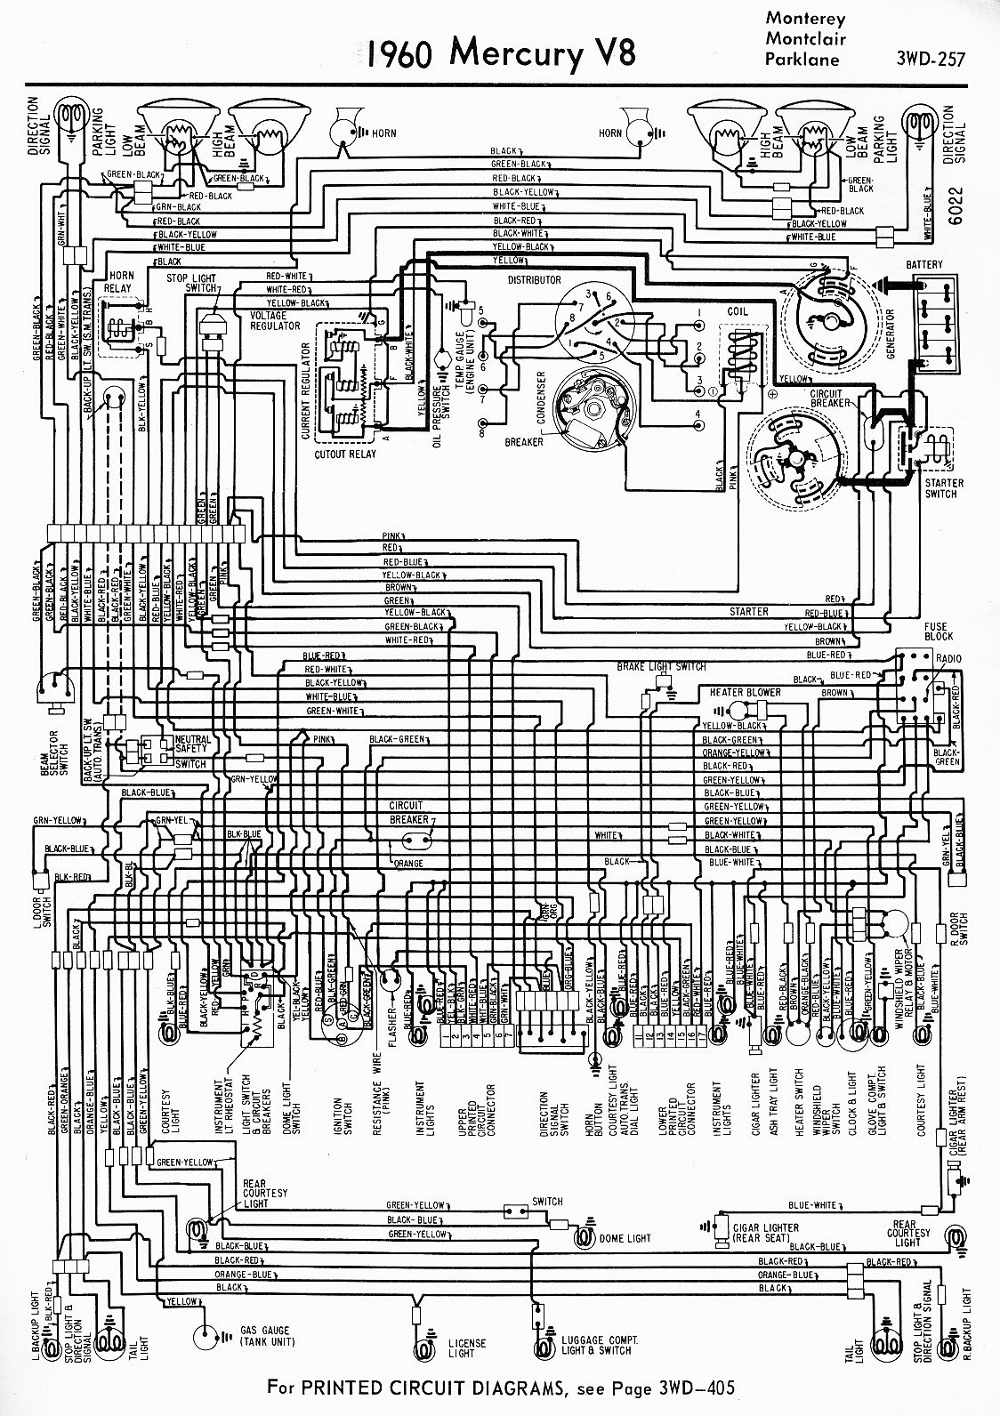 ford wiring diagram color codes functional hierarchy diagrams 911: december 2011